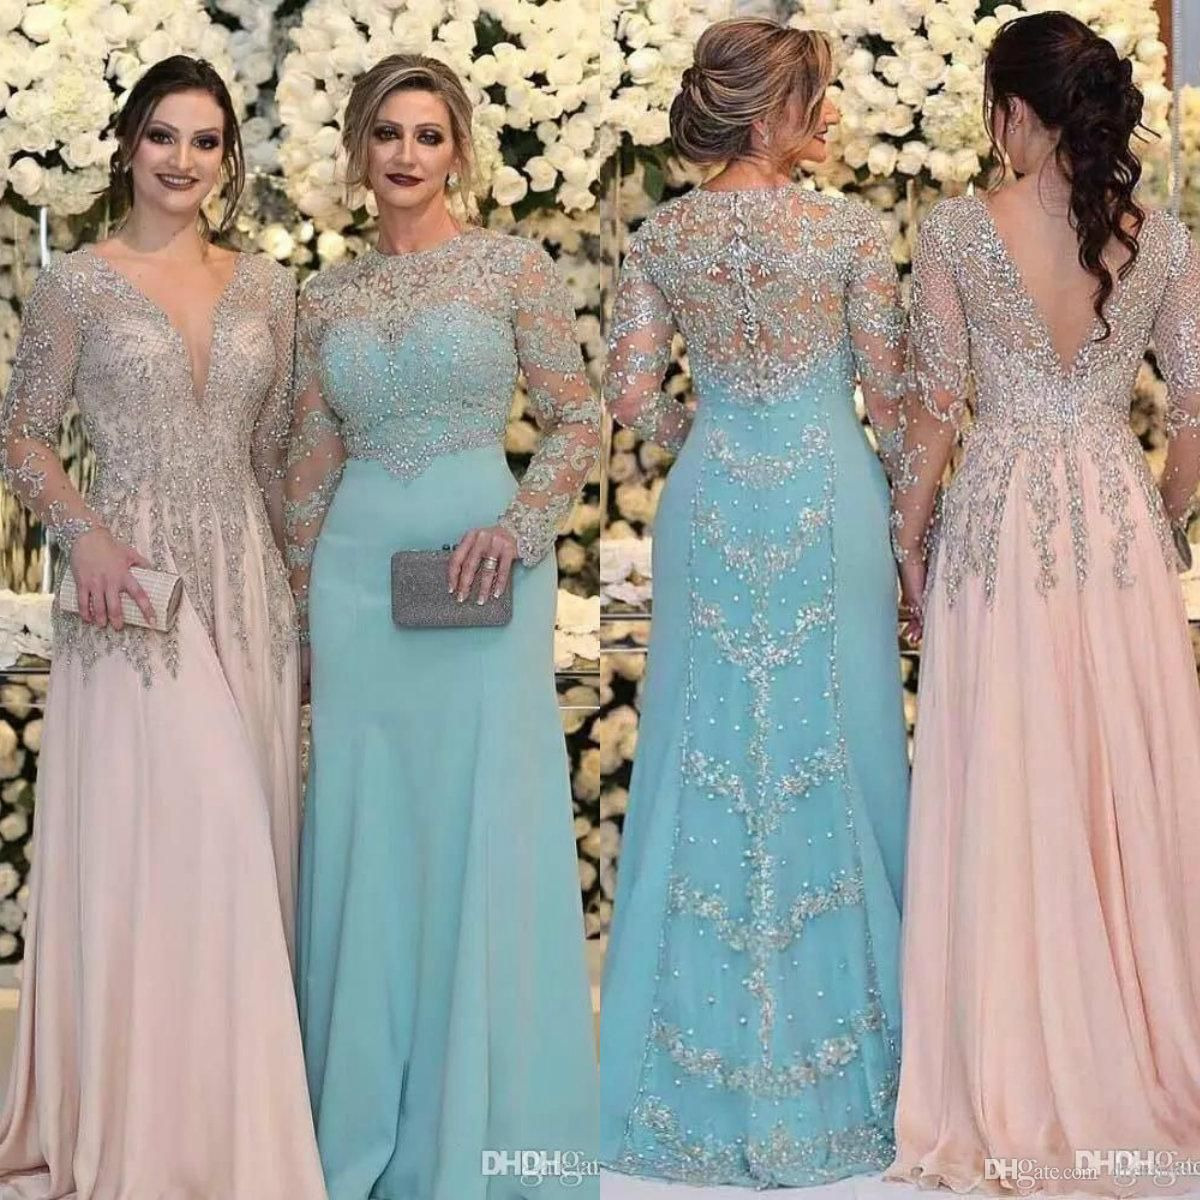 2018 Sexy Mother Of The Bride Dresses Jewel Neck Long Sleeves Silver Beaded Lace Appliques Beaded Chiffon Plus Size Party Dress Evening Gown Mother Of The Groom Dress Plus Size Mother Of The Groom Dresses Petite From Haiyan4419, $179.4| DHgate.Com #groomdress